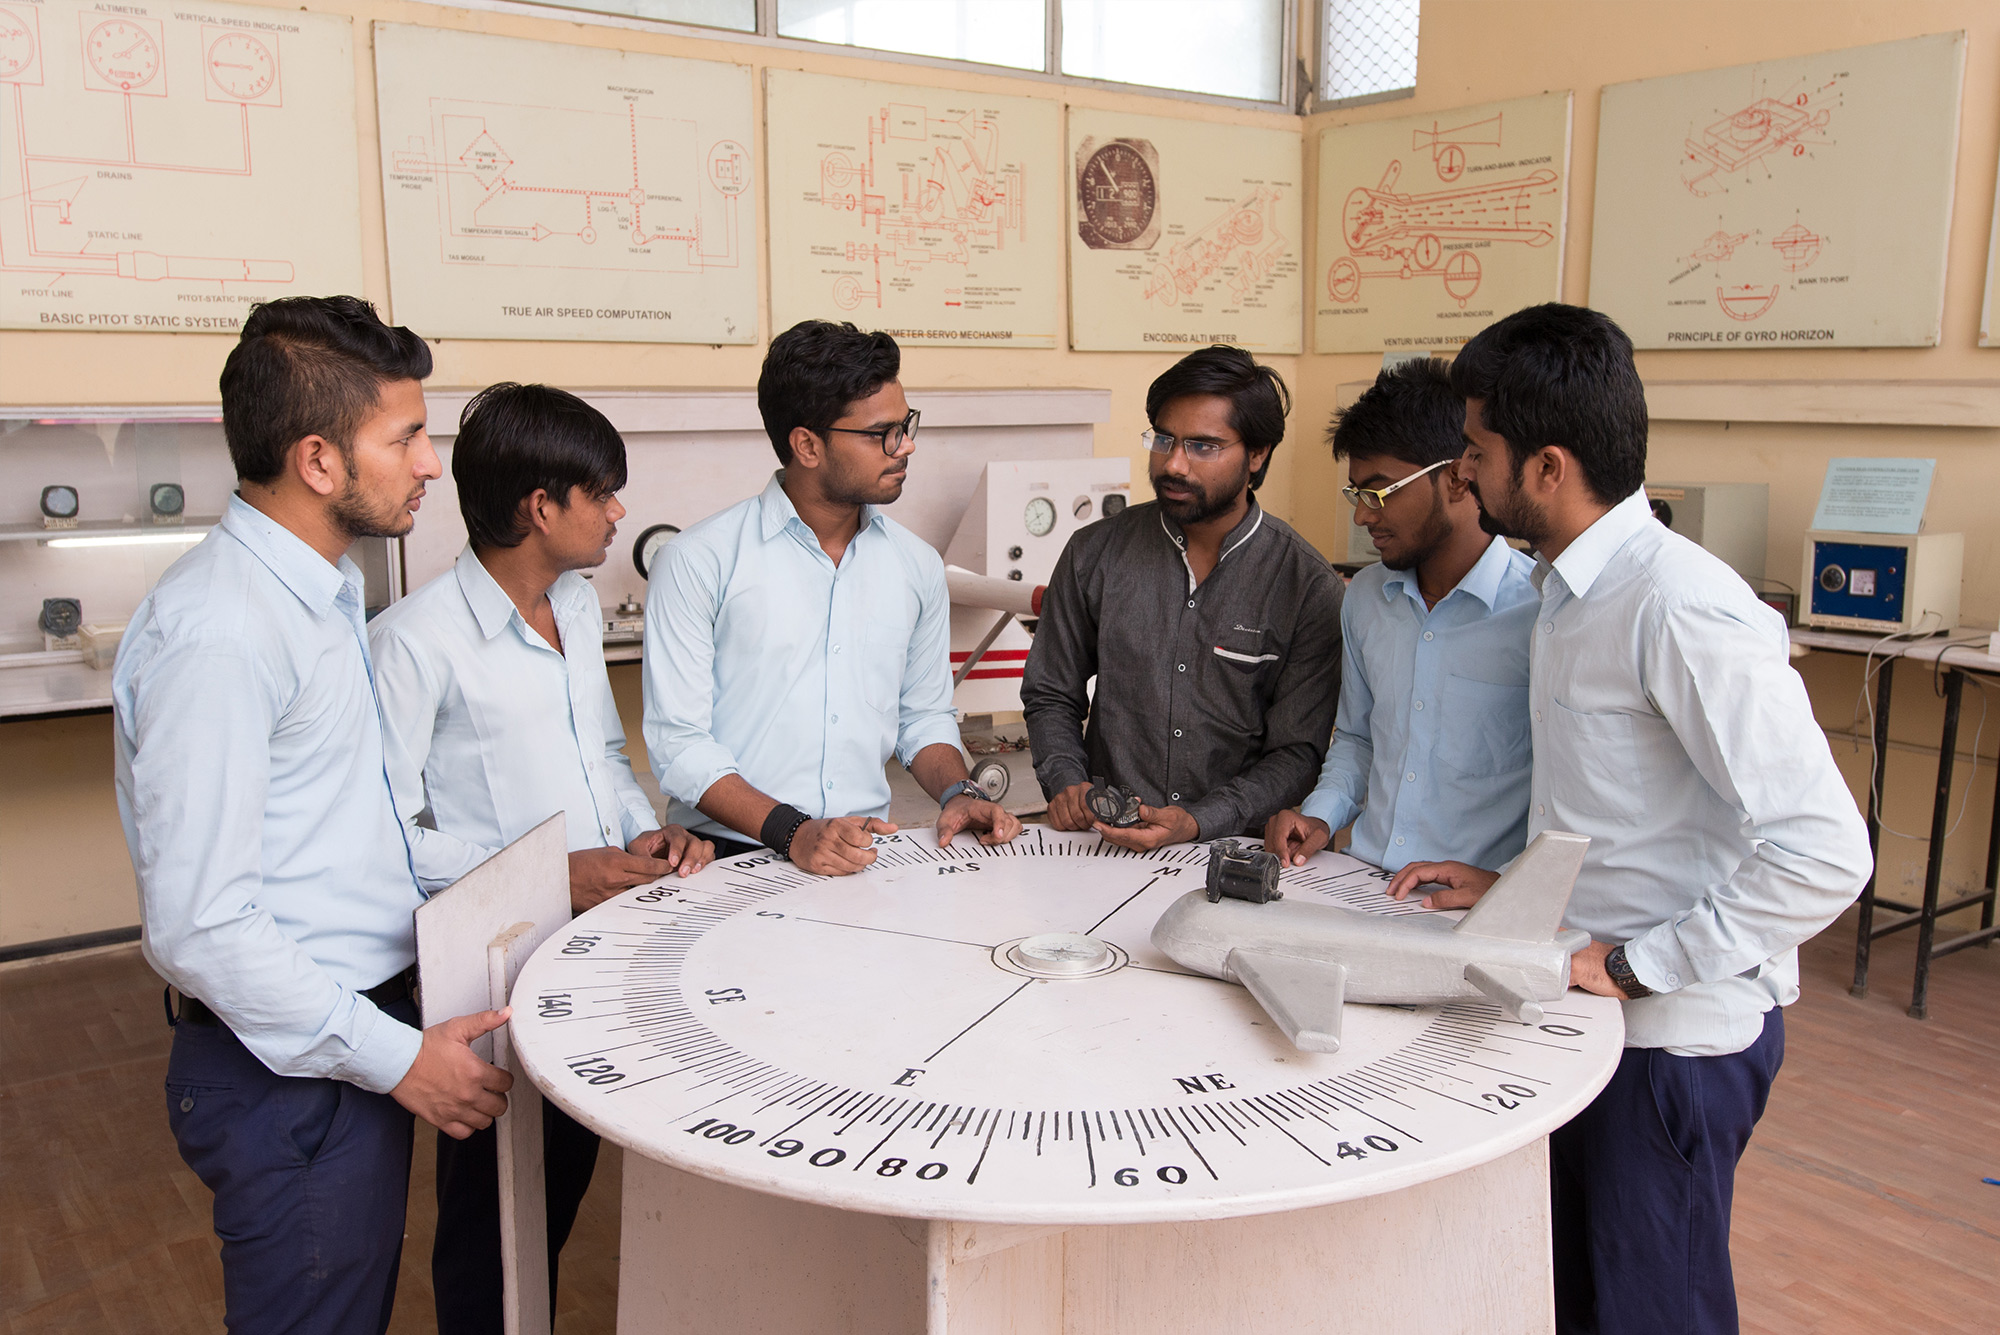 lucknow institute of technology  u2013 imparting quality